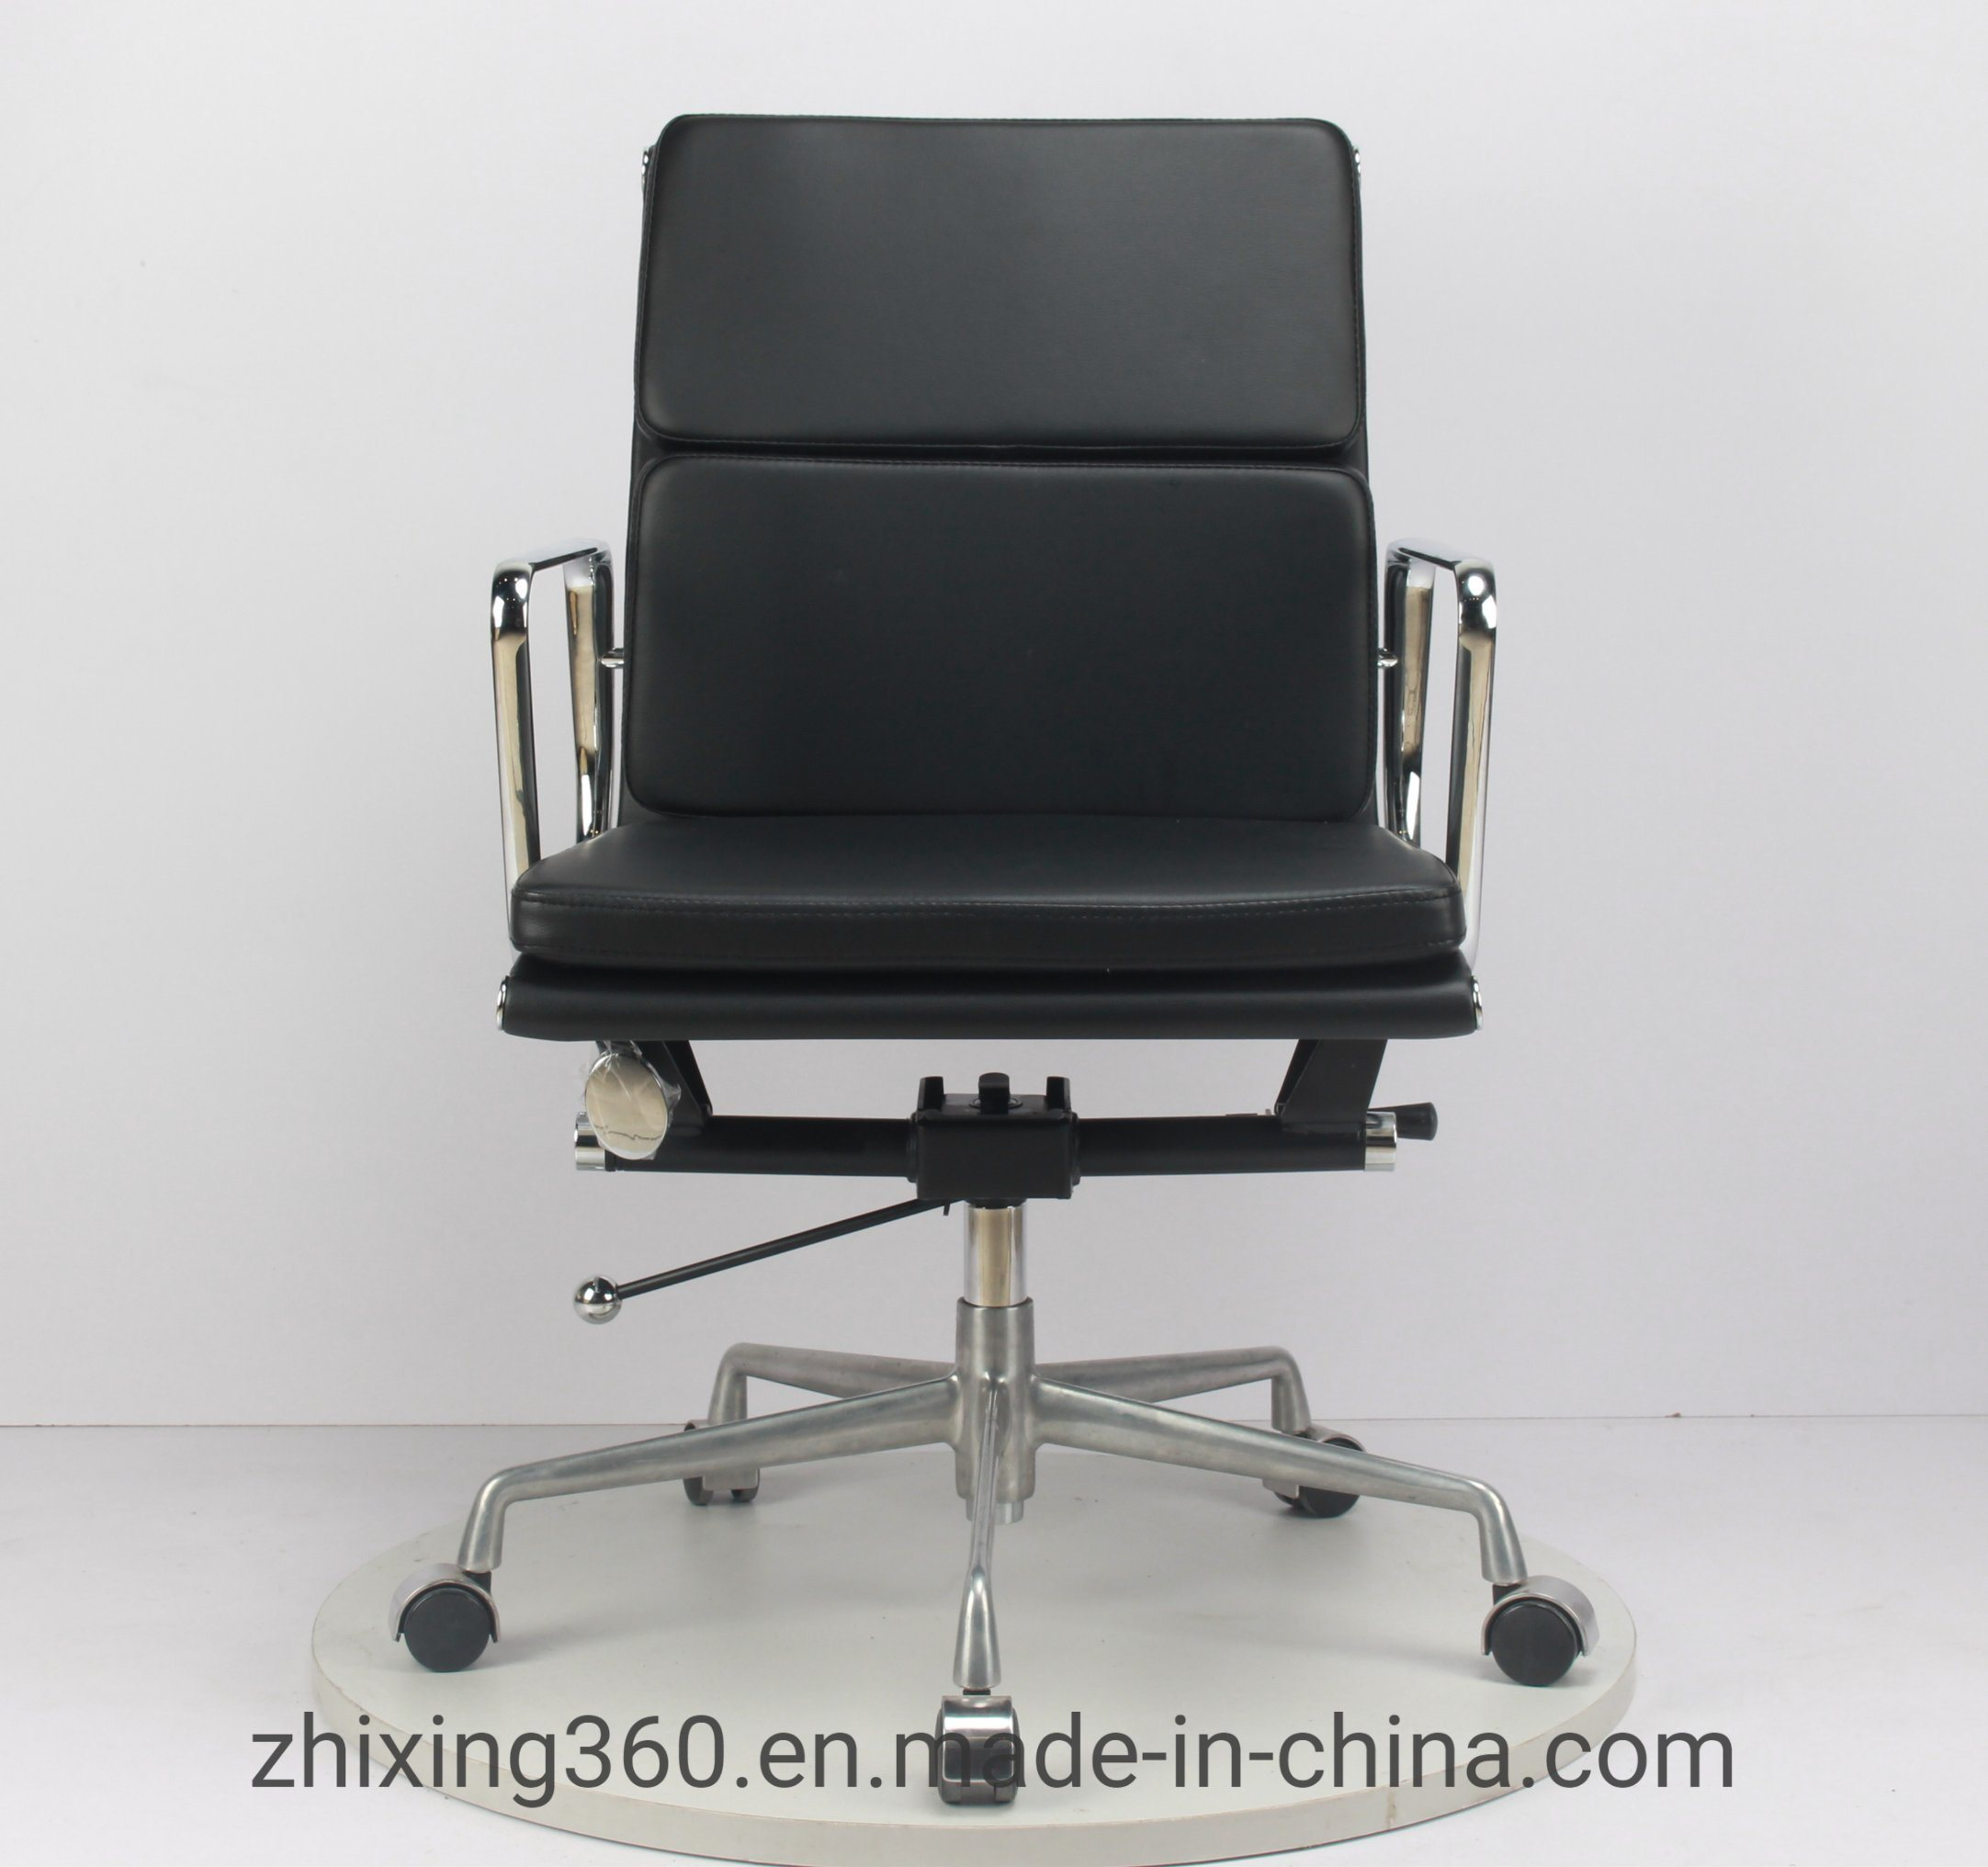 Reproduction Eames Chair Hot Item Classic Reproduction Eames Low Back Soft Pad Office Chair